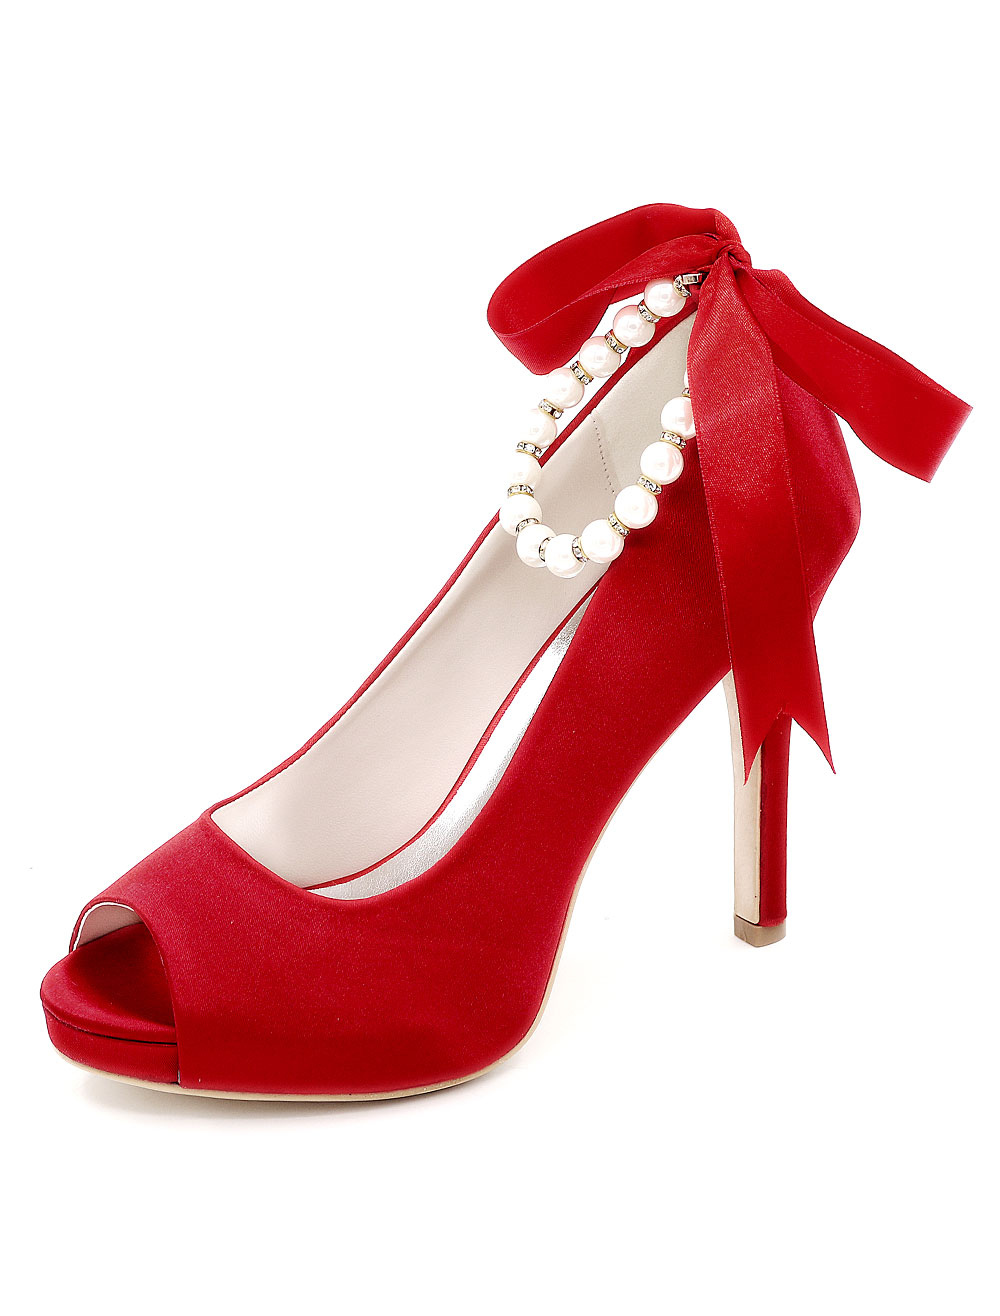 Buy Peep Wedding Shoes Platform High Heels Pearls Women's Ankle Strap Stiletto Satin Bridal Shoes for $49.39 in Milanoo store